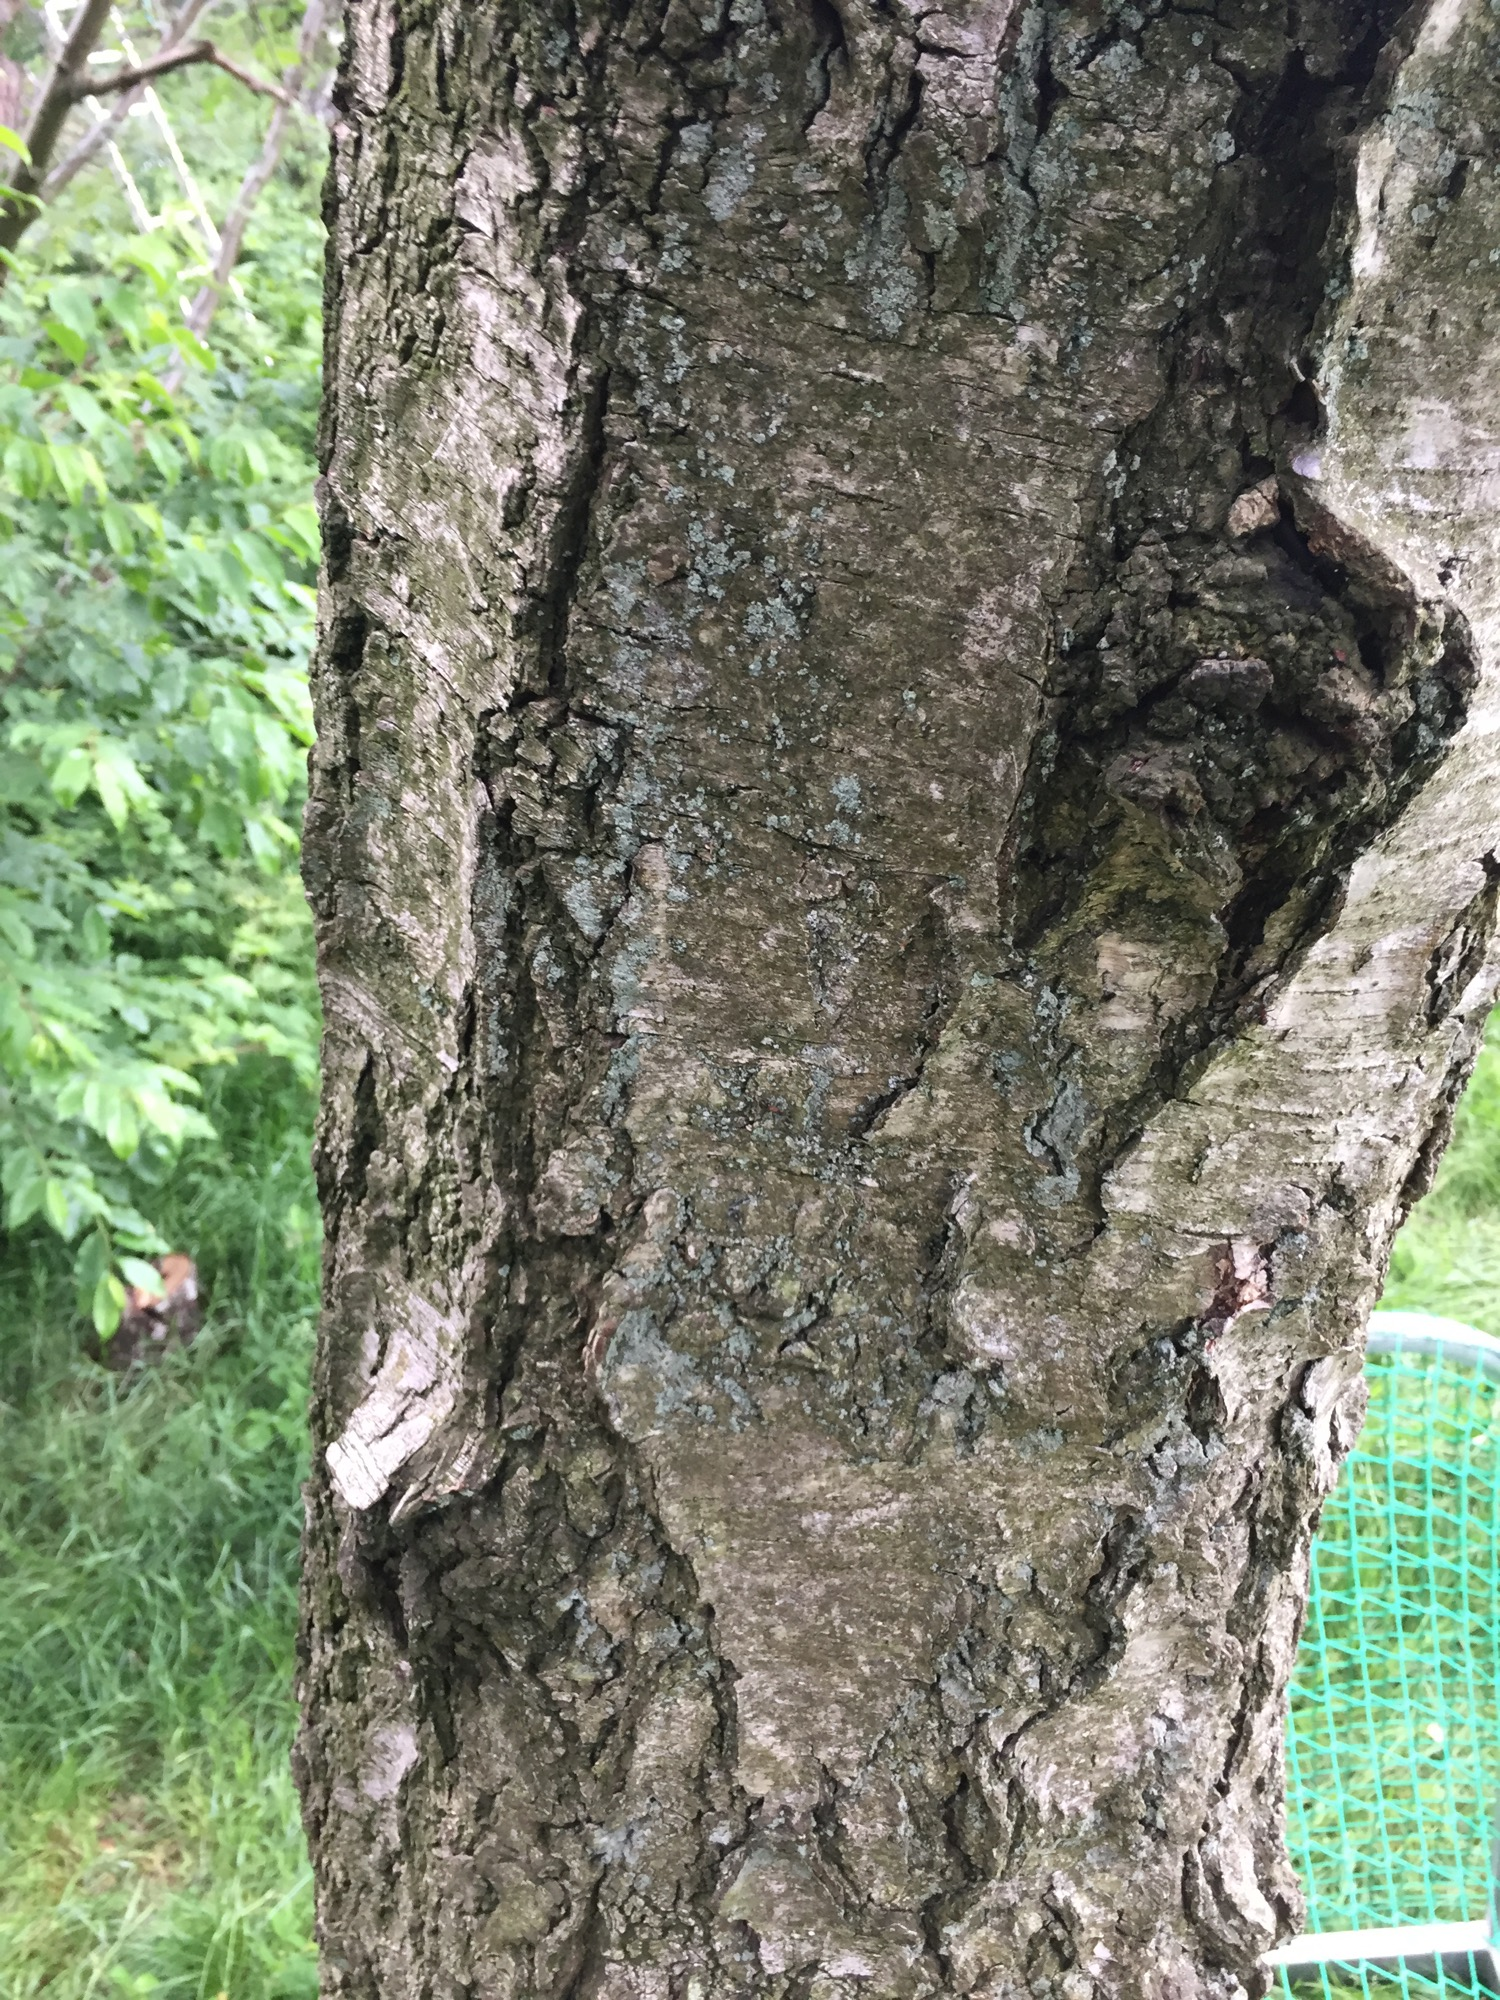 Results of 3 days continuous TreePRO usage on a very rough bark